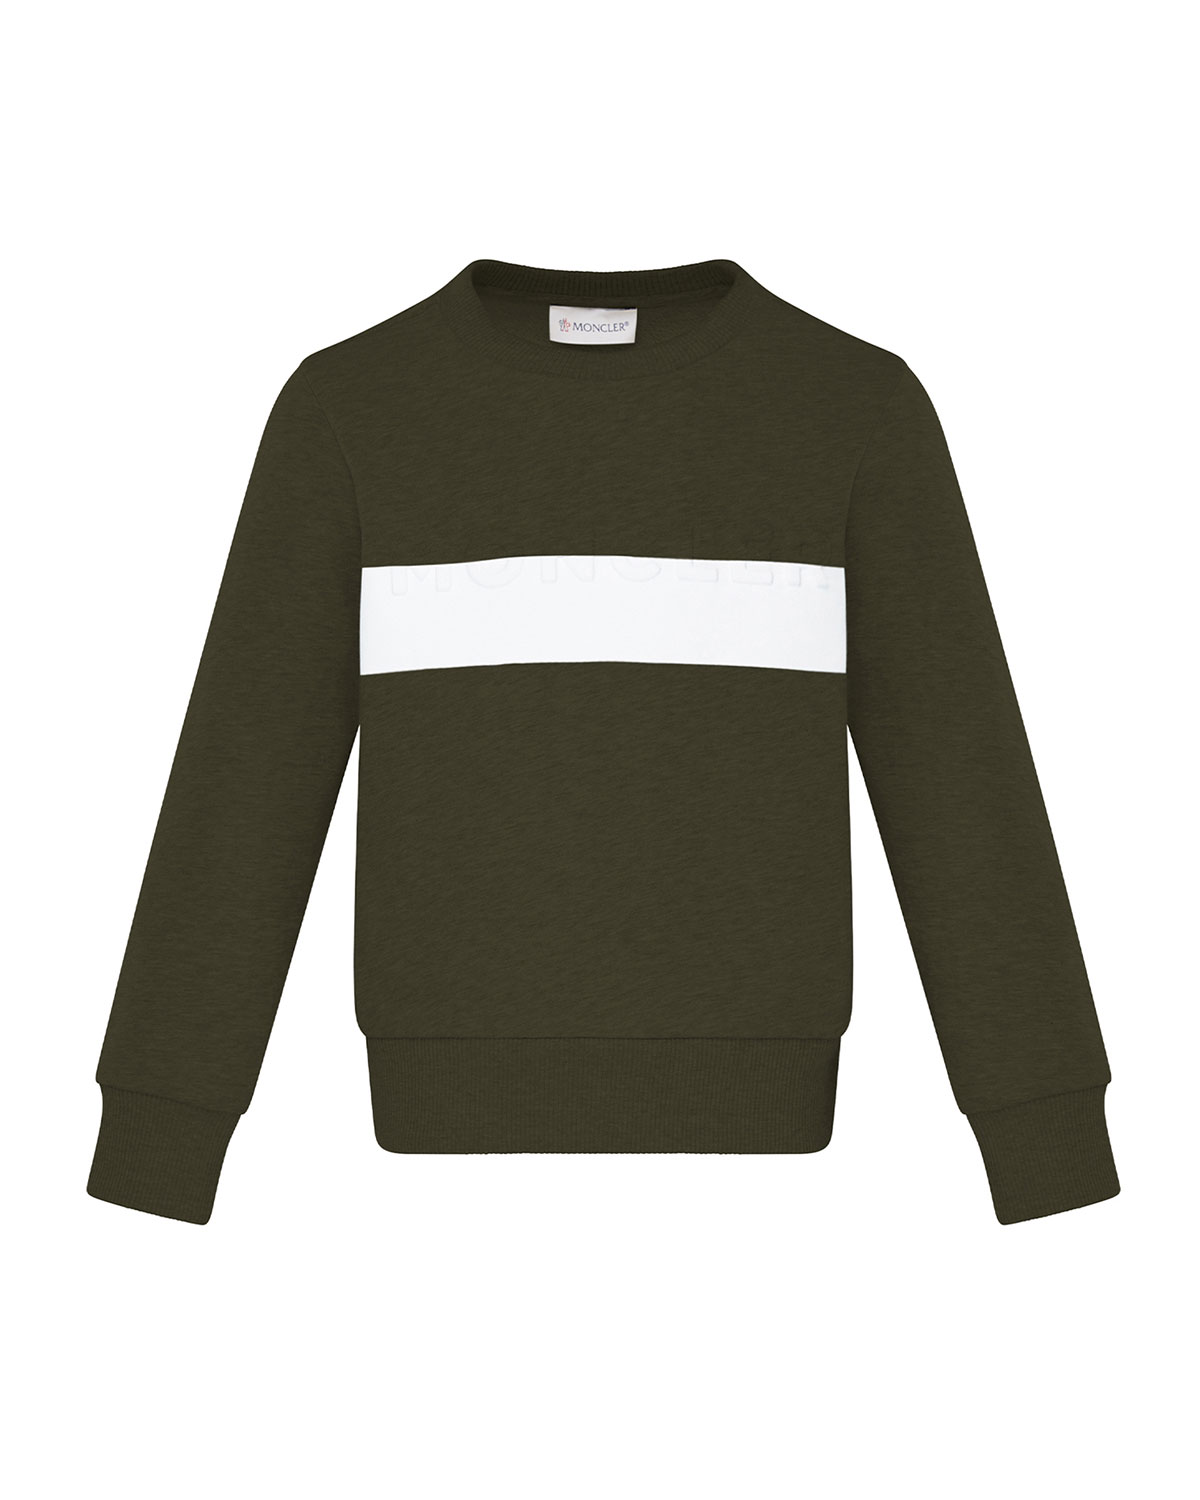 Moncler BOY'S CONTRAST TAPED CREWNECK SWEATER